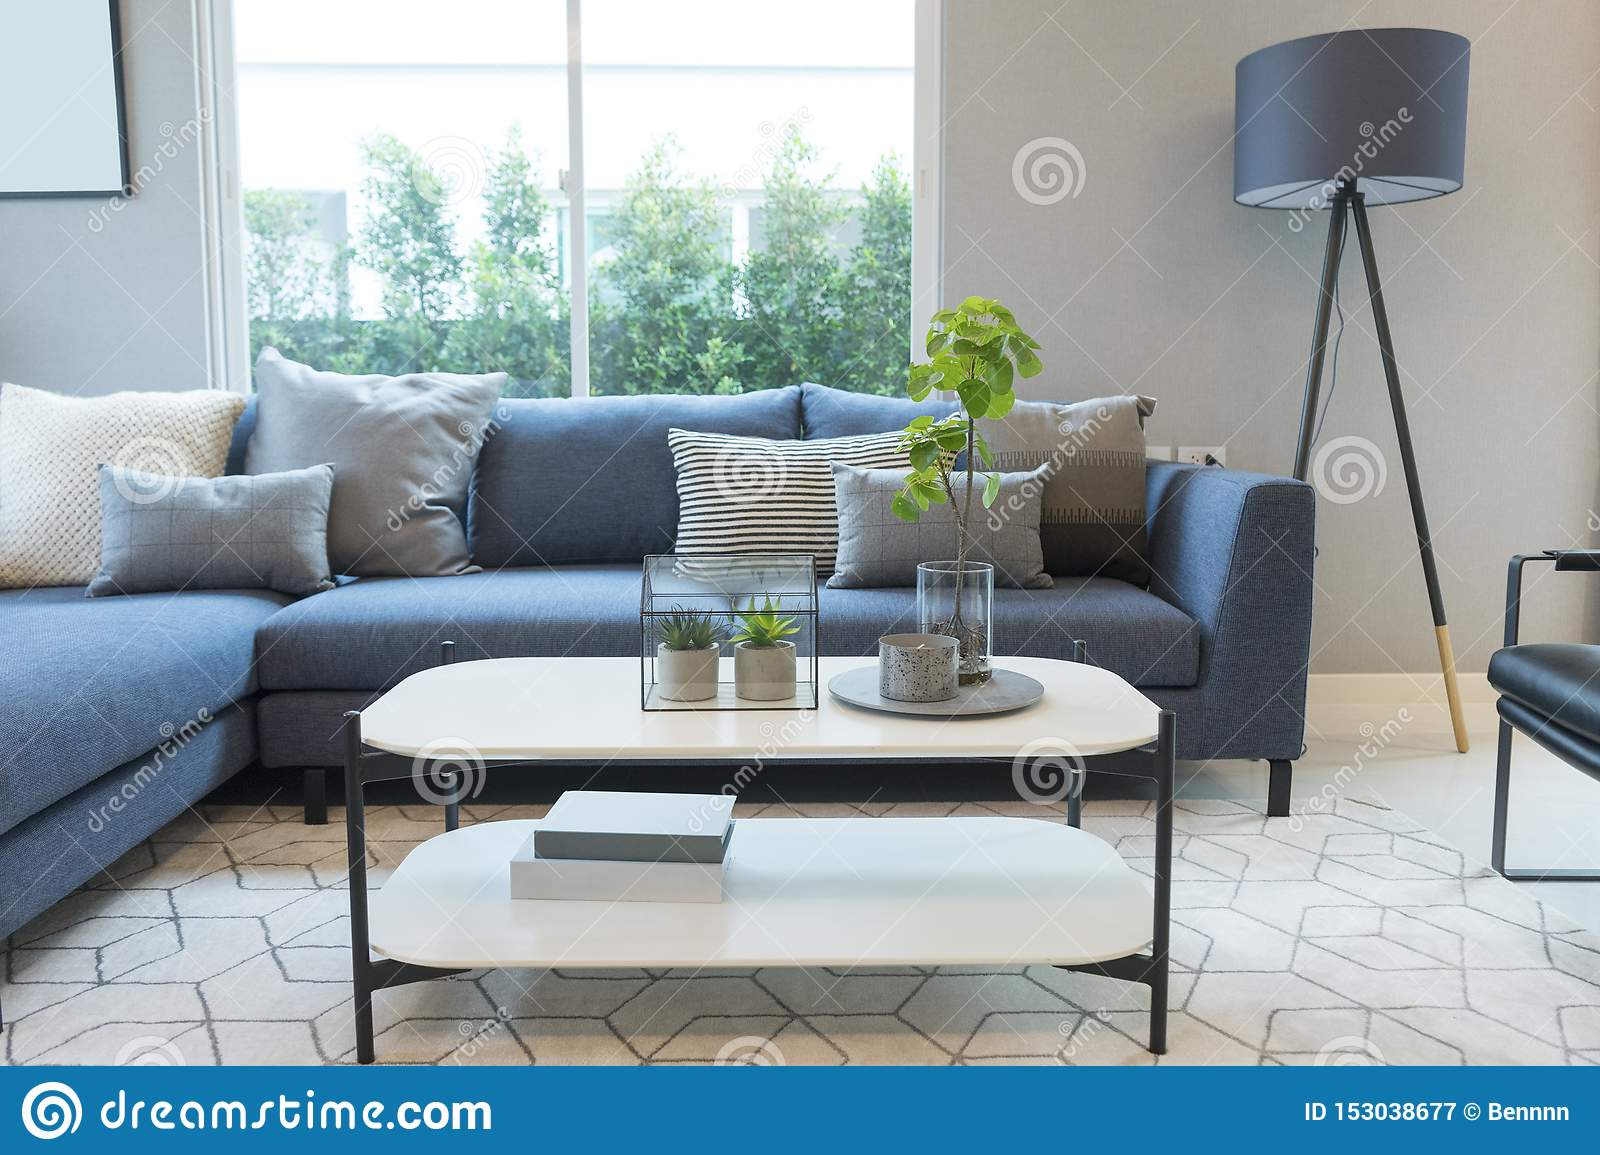 Modern And Stylish Living Room Blue Sofa And Grey Pillow With Coffee Table Stock Image Image Of Estate Elegant 153038677